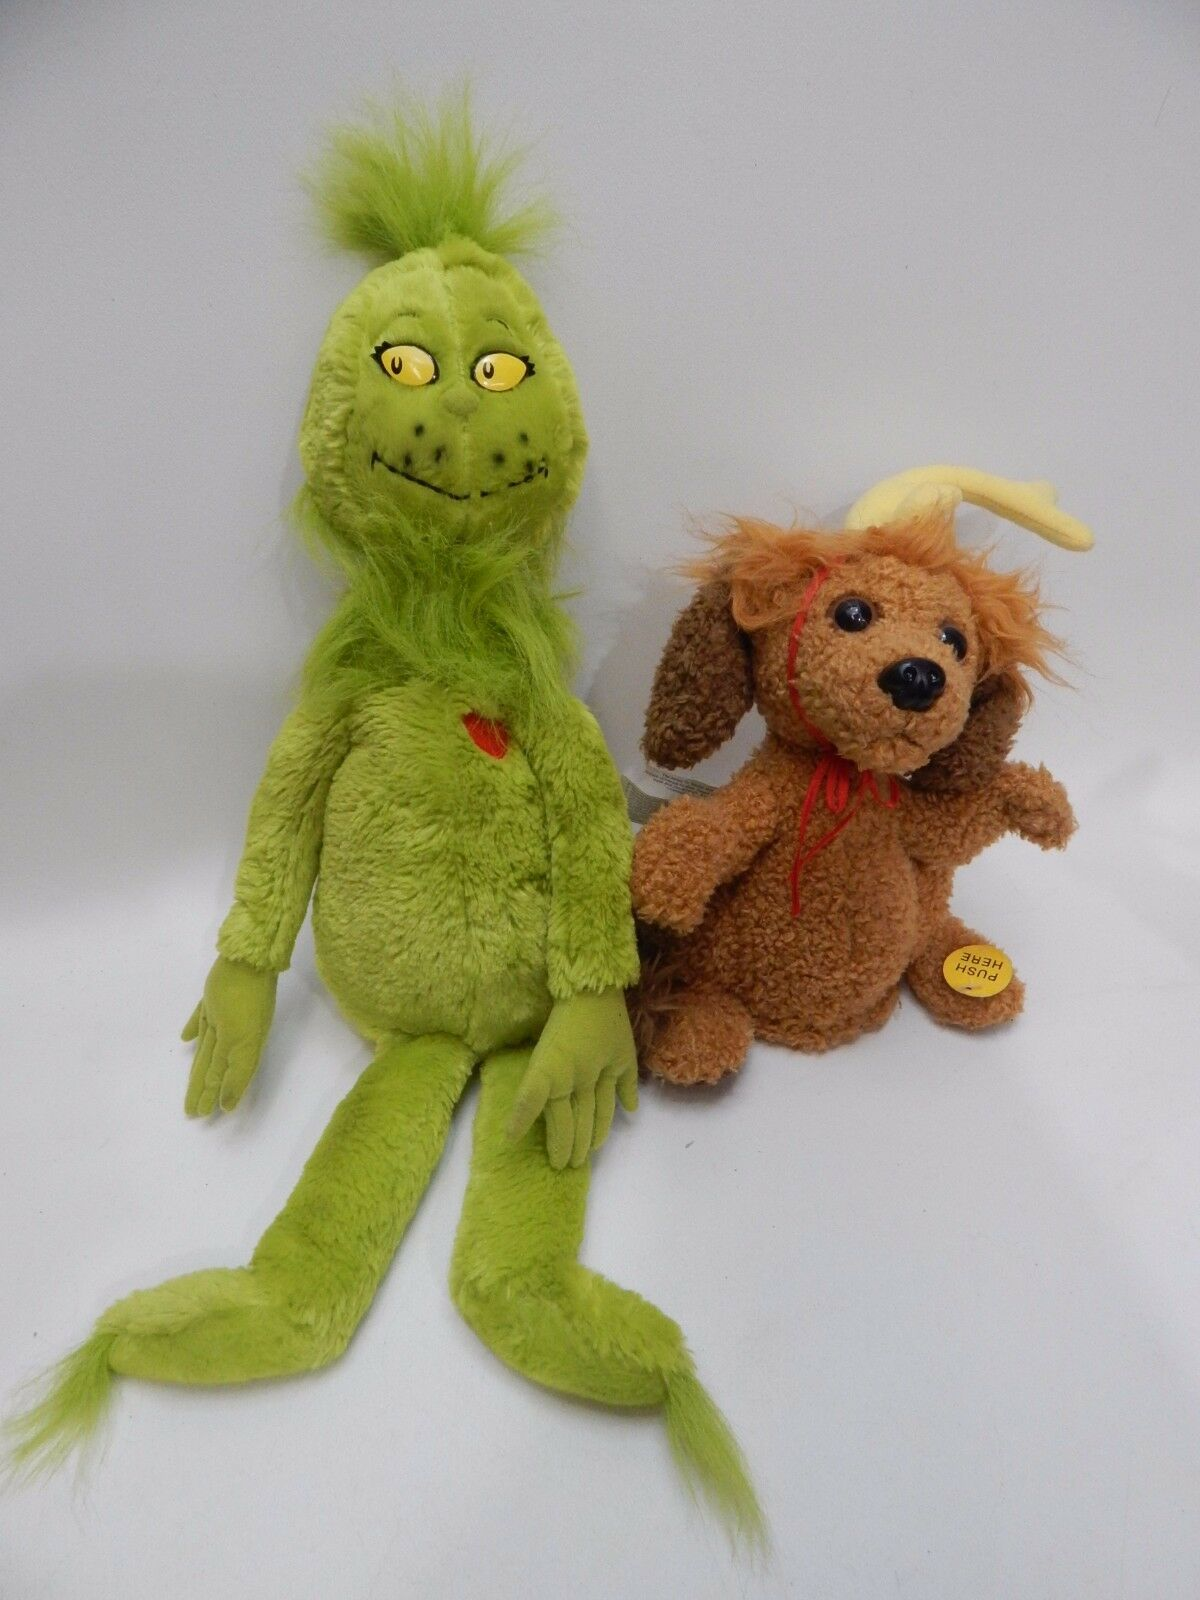 Gemmy Dog Max Sings Your A Mean One w Kohls Mr Grinch Plush Music Sound Animated